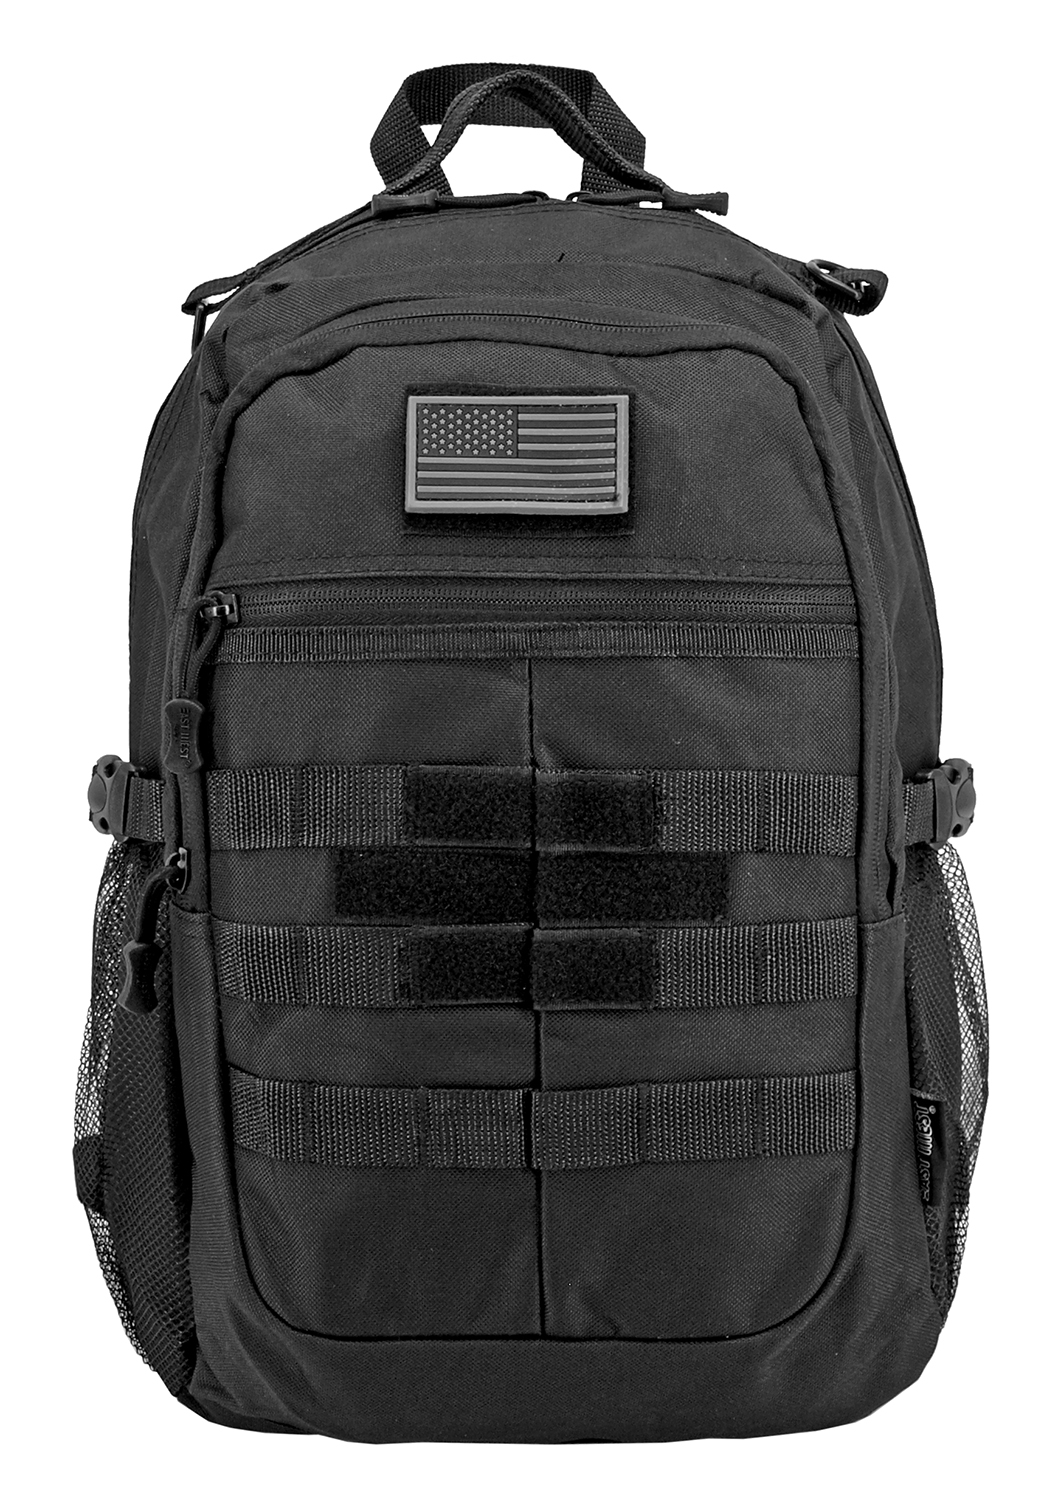 The Tactical Tradition Backpack - Black